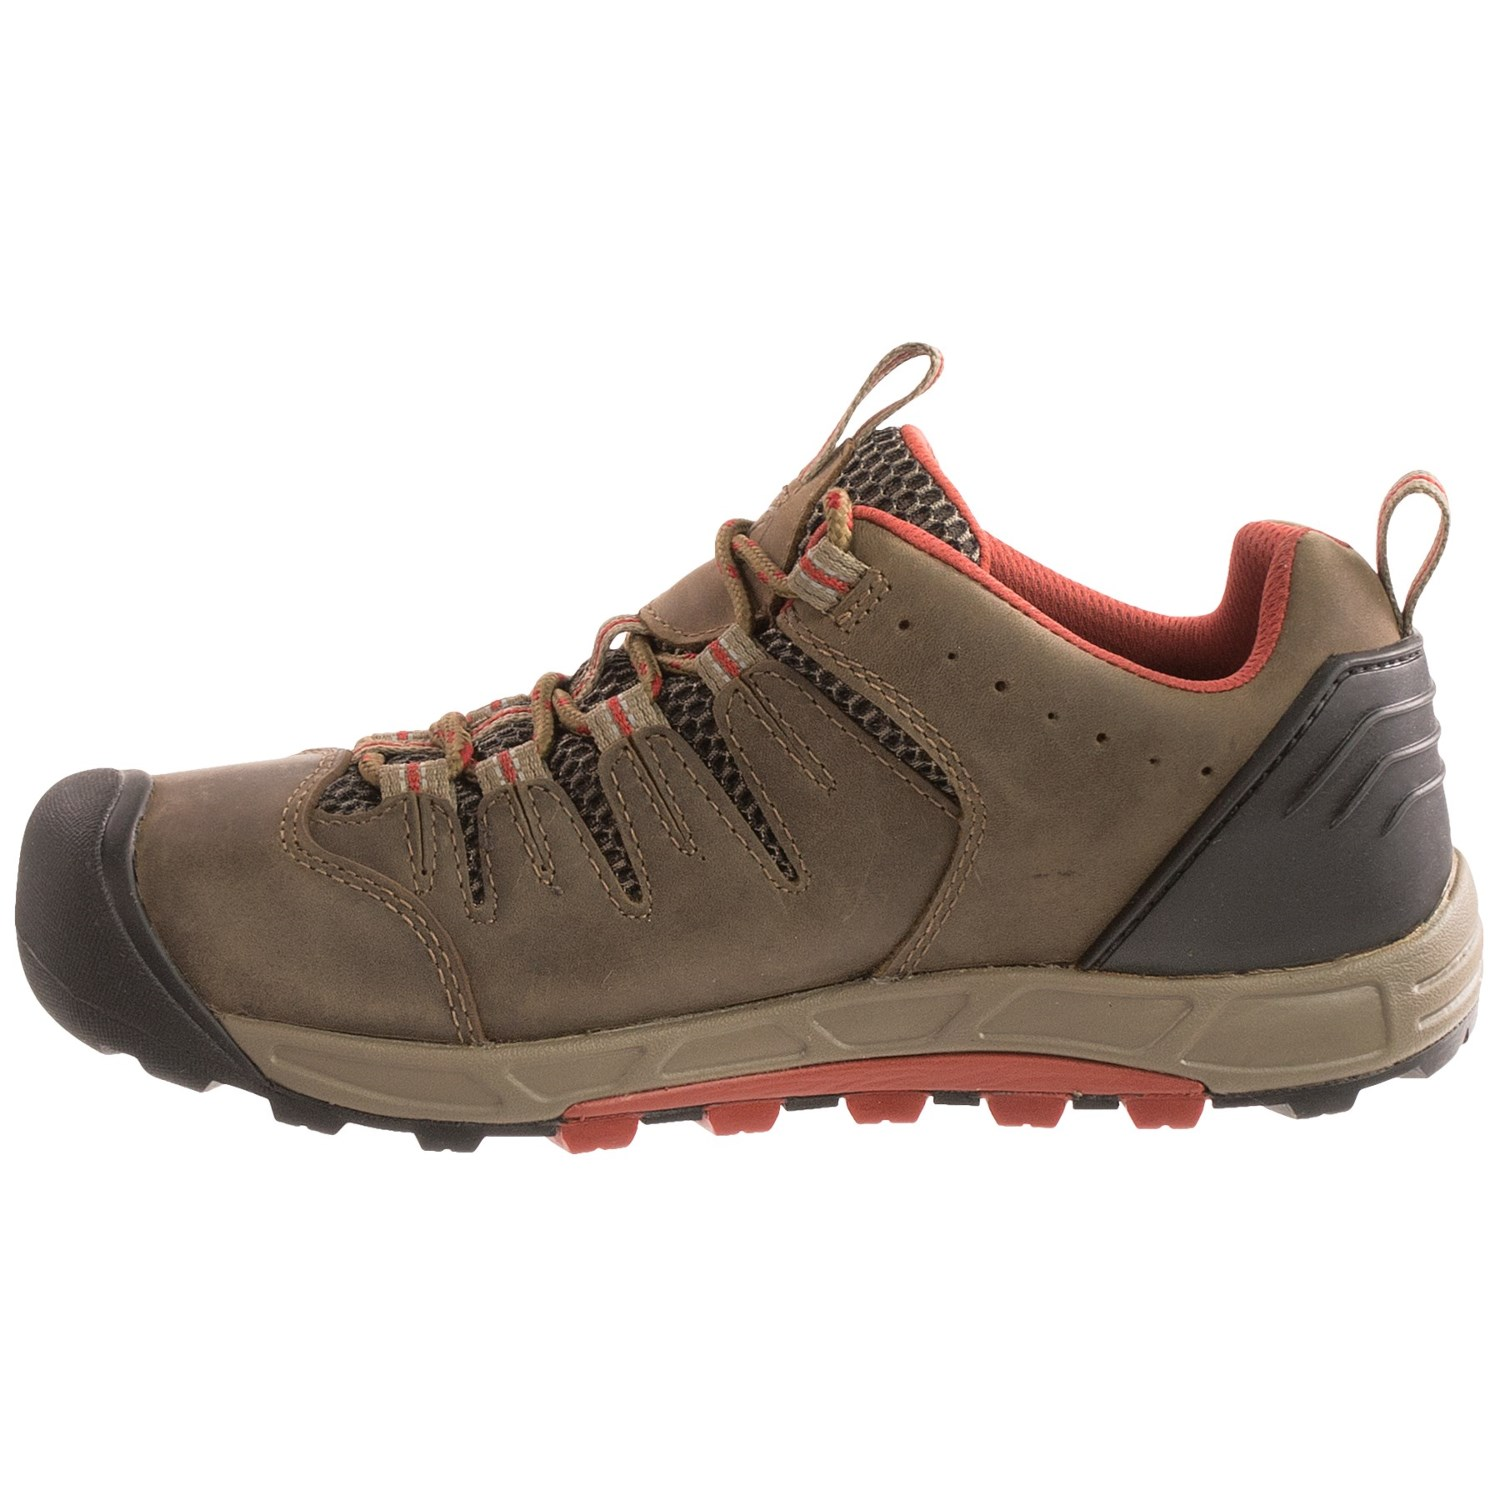 Keen Shoes For Men Reviews